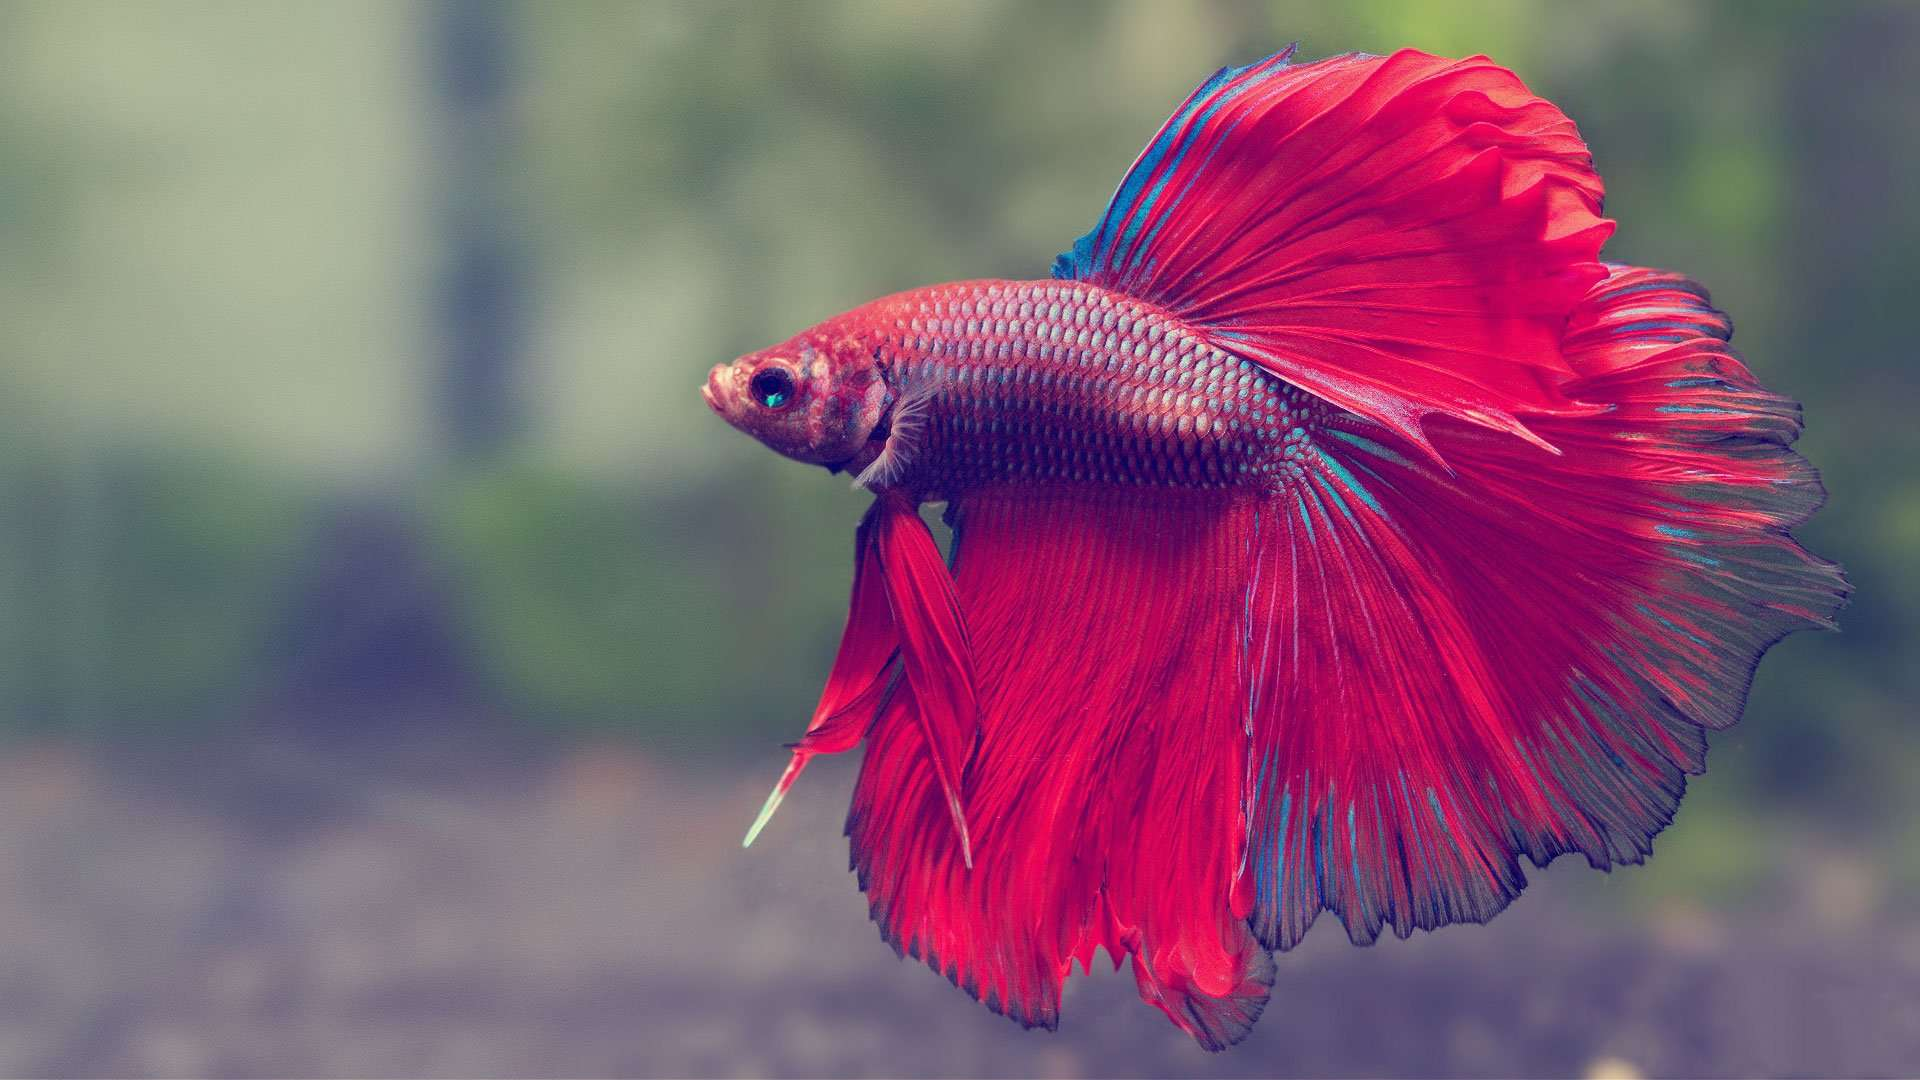 How to take care of a betta fish best betta fish tank for Care for betta fish